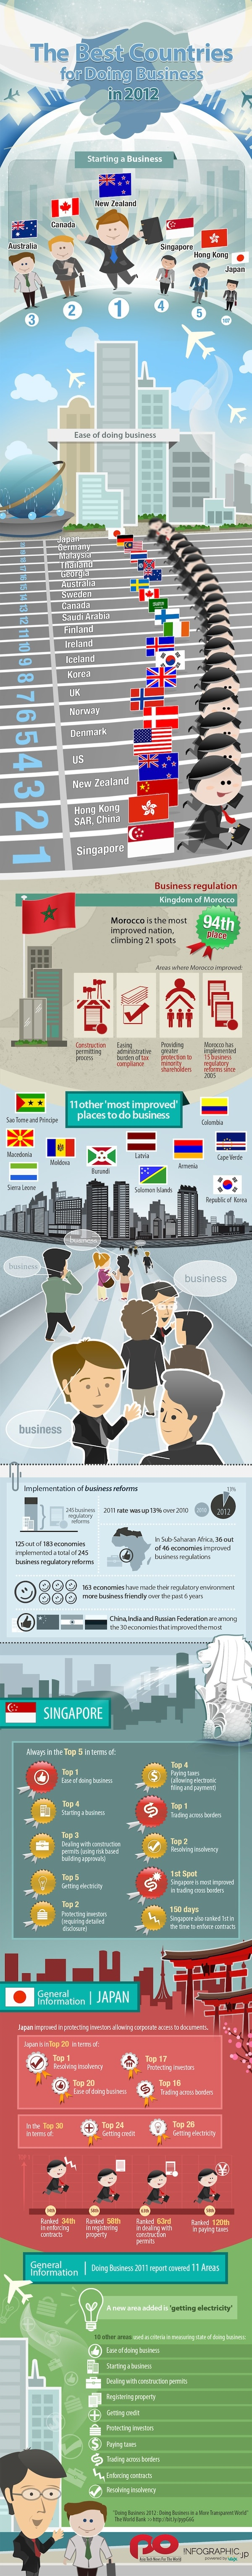 The best countries for doing business